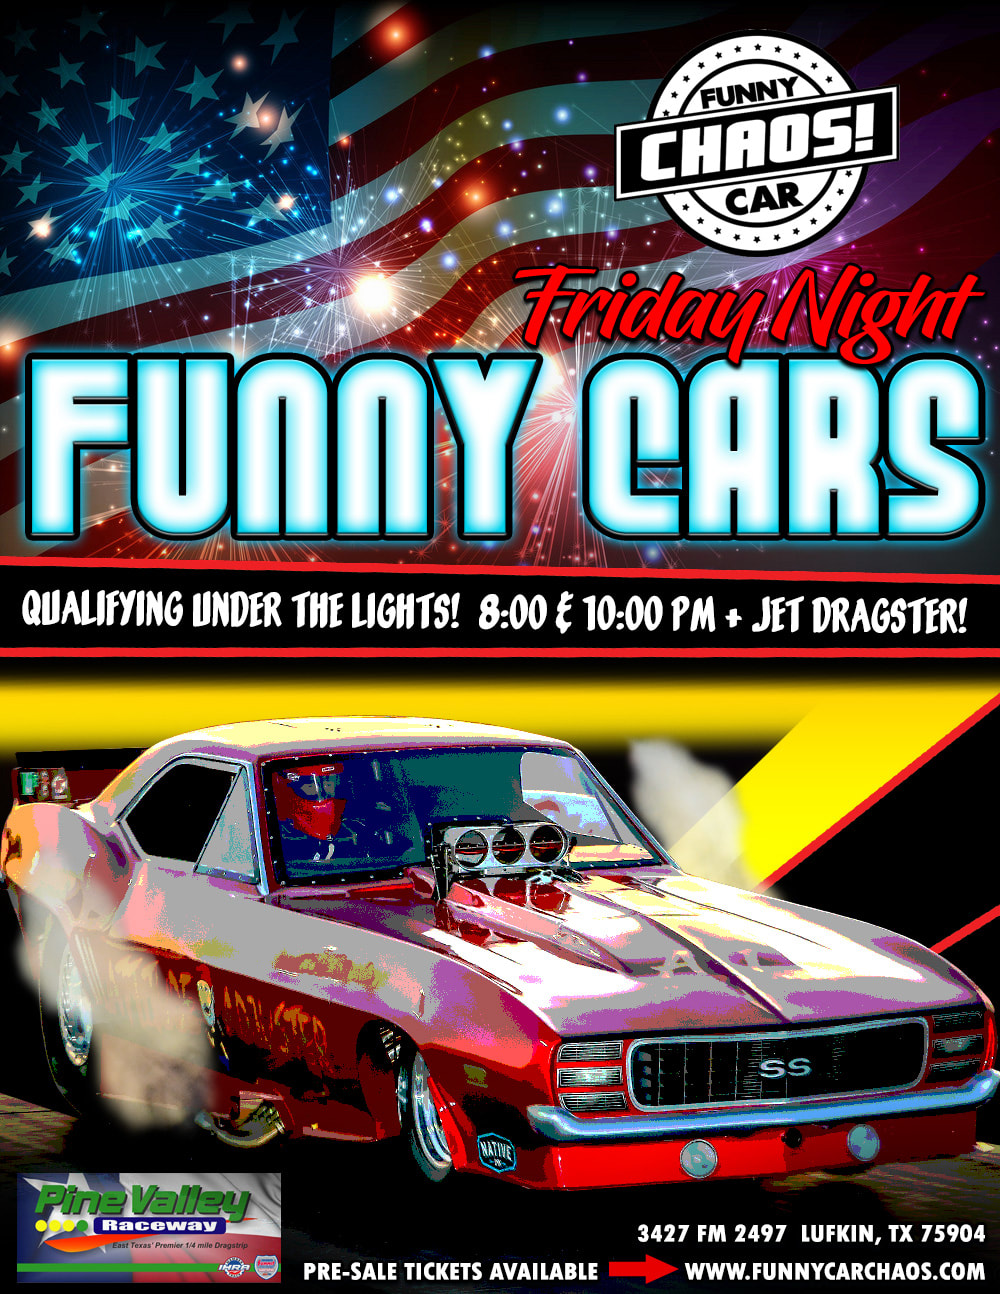 Pine Valley Raceway The One The Only Funny Car Chaos